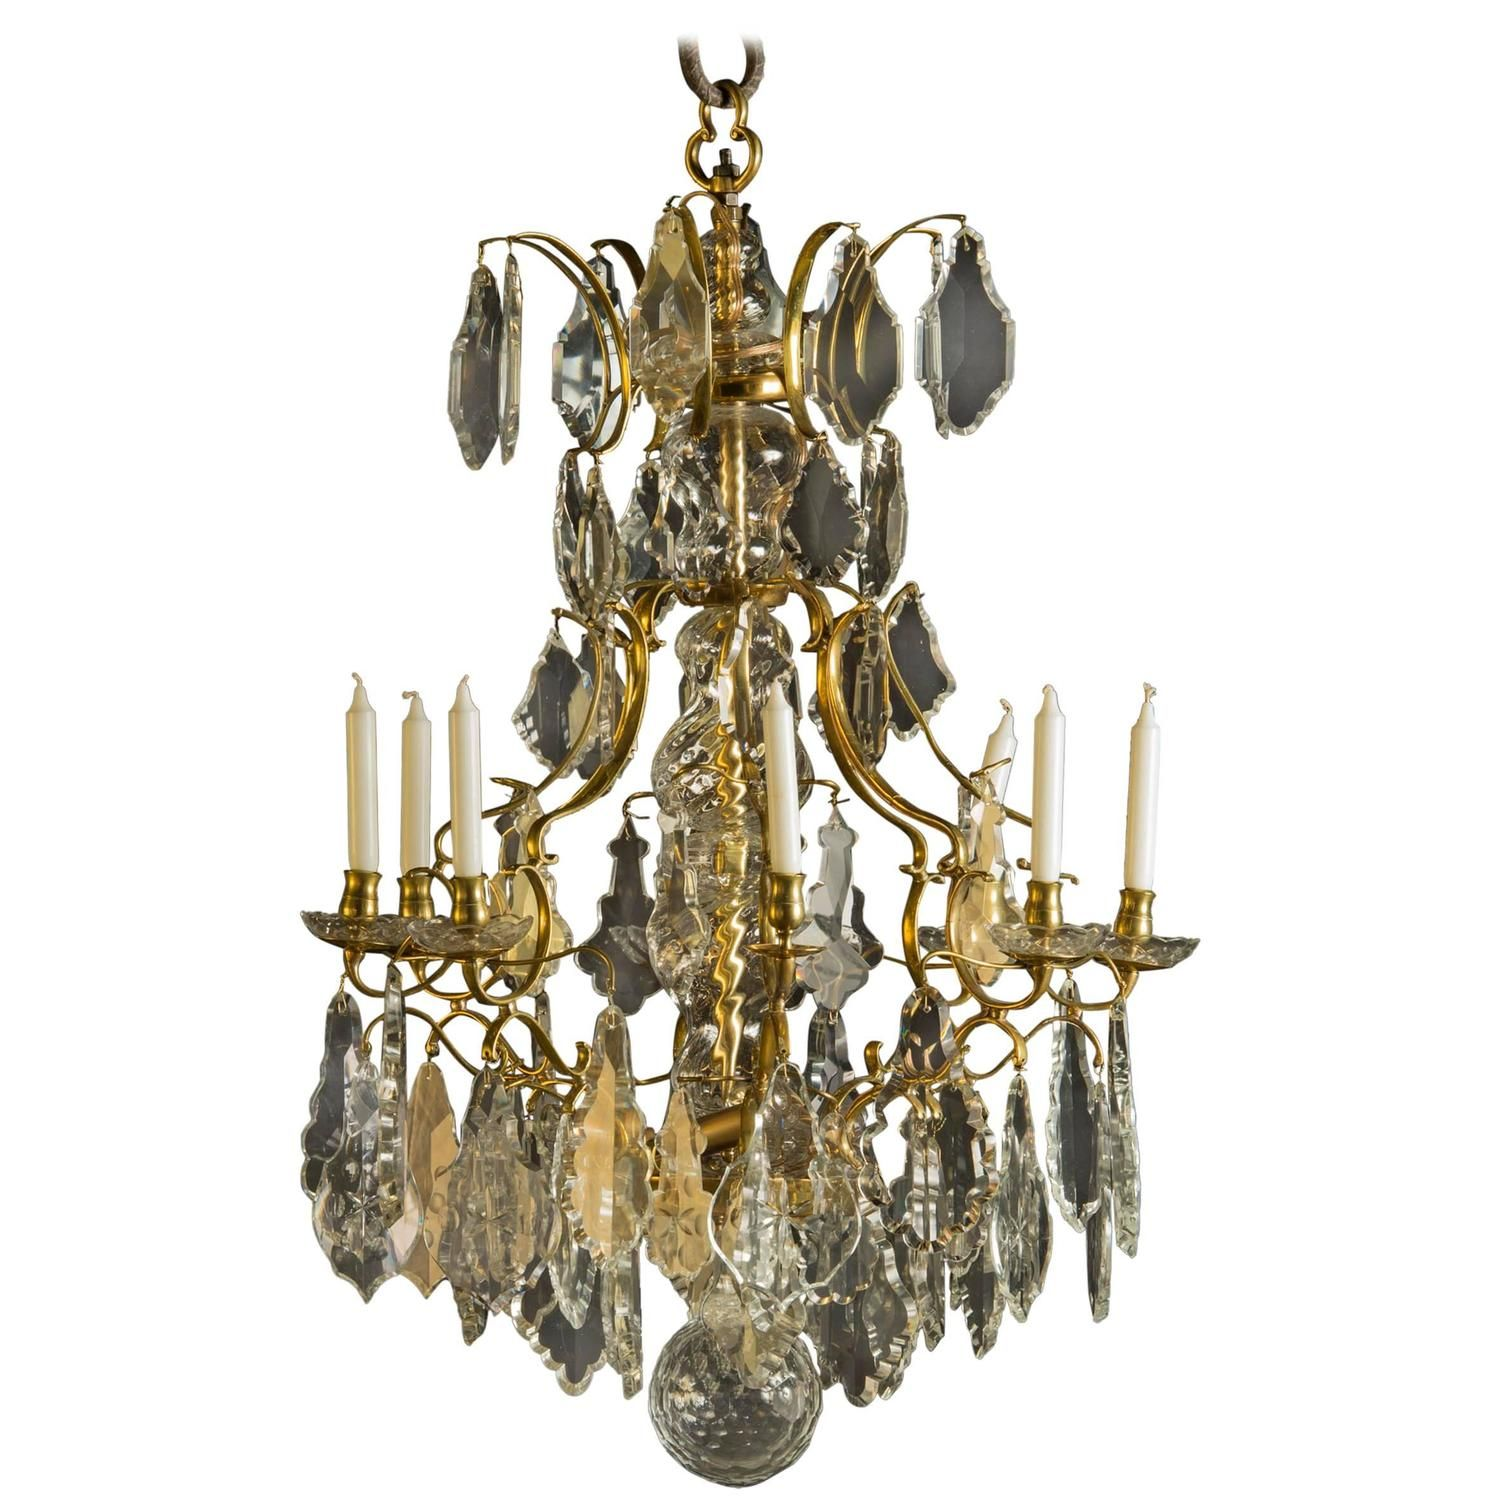 Swedish chandelier baroque style 1840 1860 from a unique swedish chandelier baroque style 1840 1860 from a unique collection of antique and modern chandeliers and pendants at https1stdibsf mozeypictures Choice Image